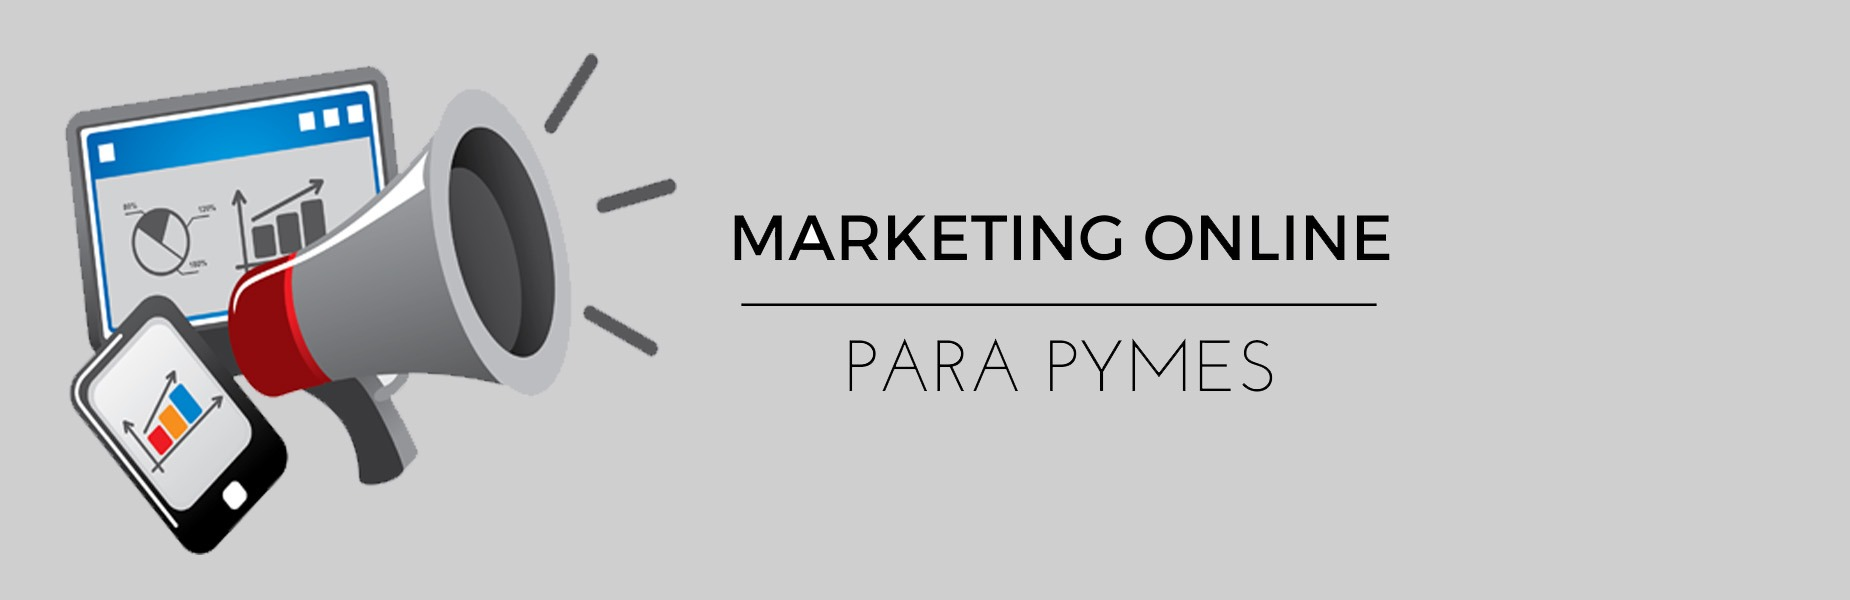 marketingonlineparaemprendedores